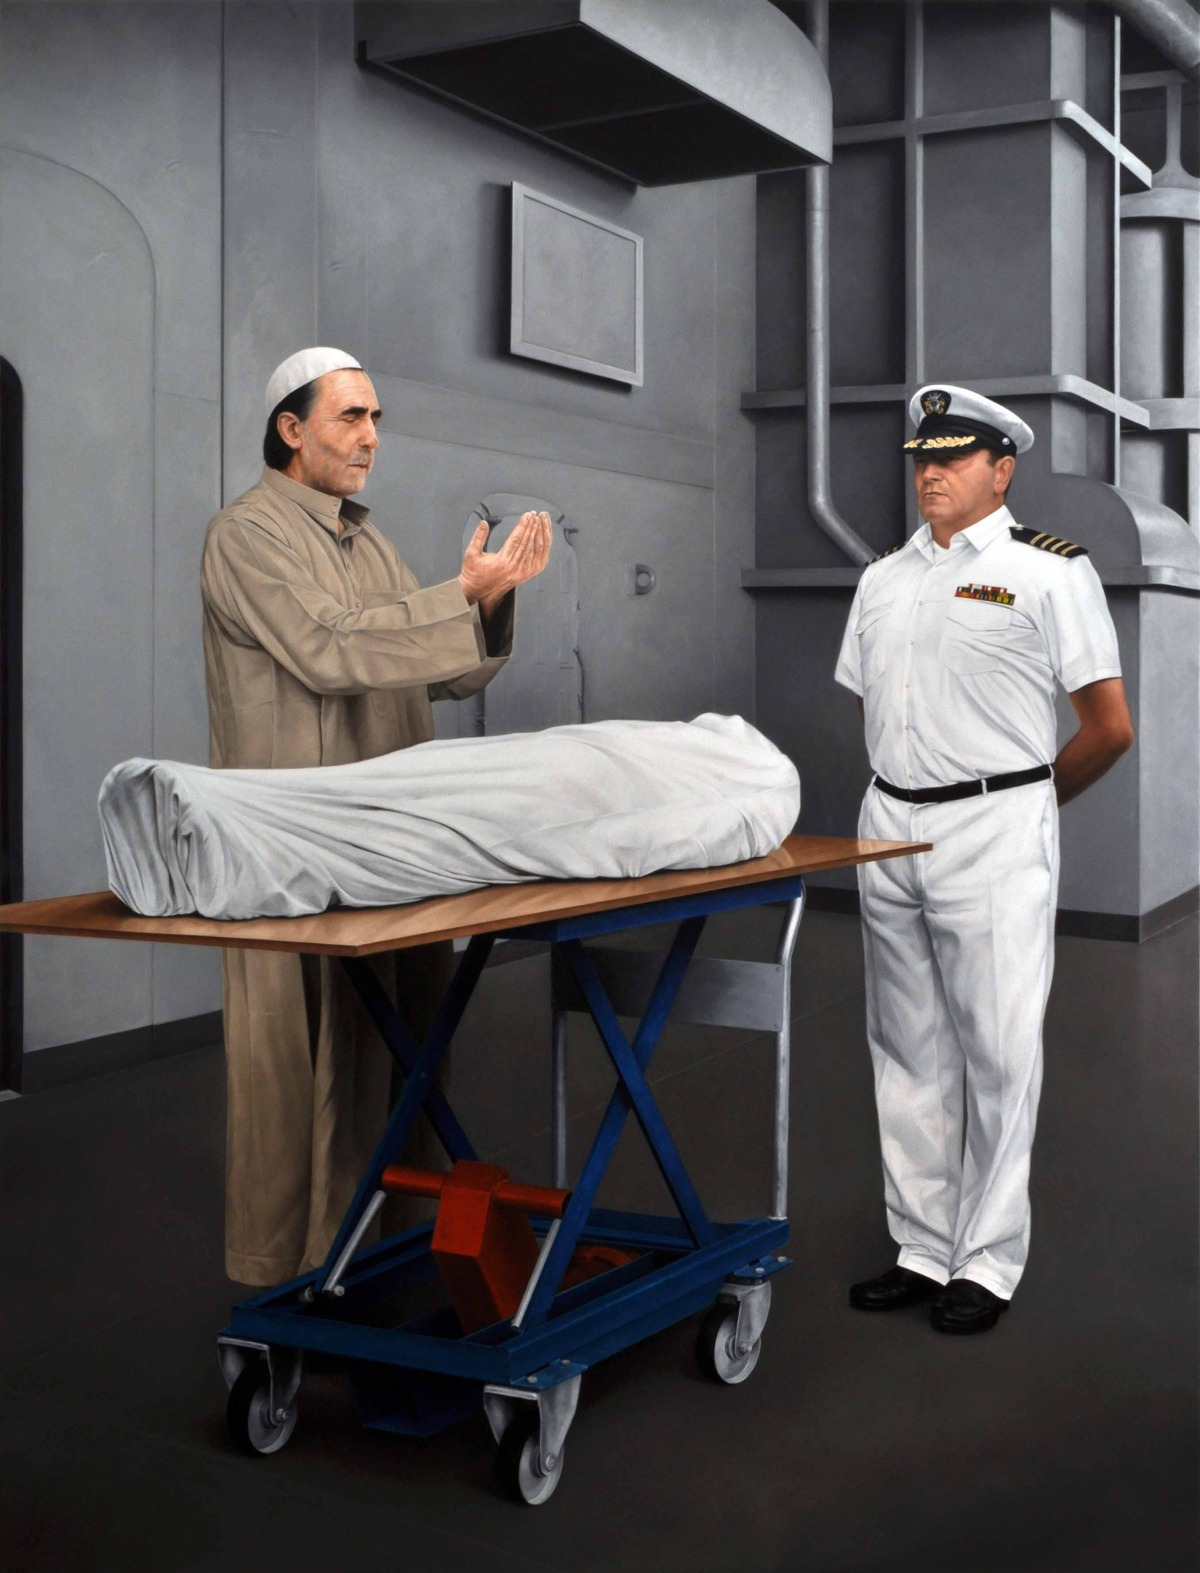 Bin laden buried at sea pictures